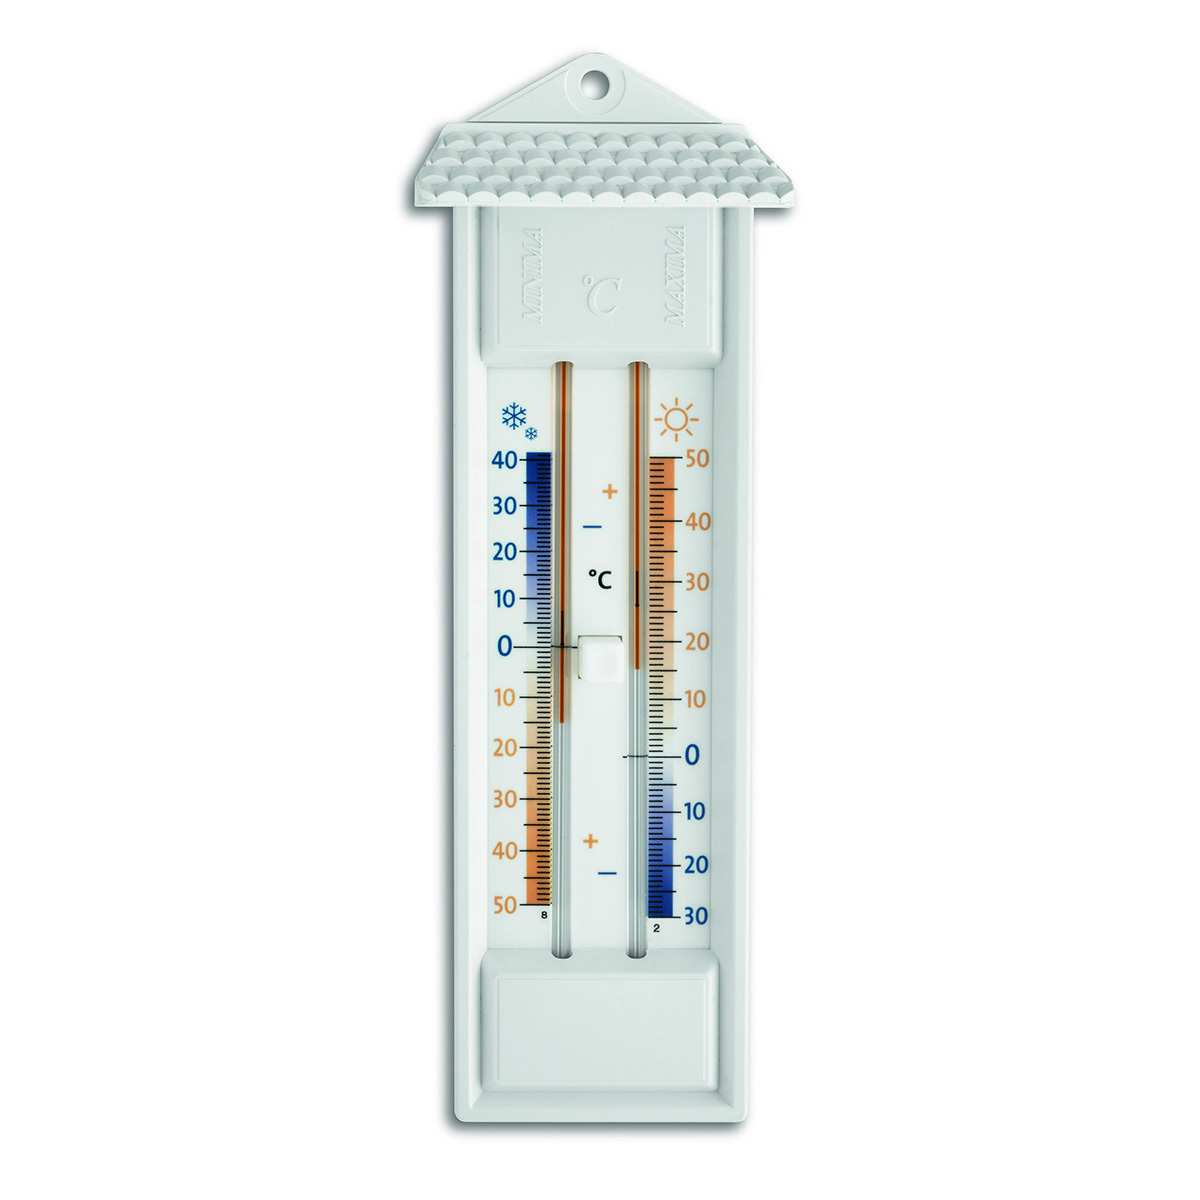 10-3014-02-01-analoges-minima-maxima-thermometer-1200x1200px.jpg